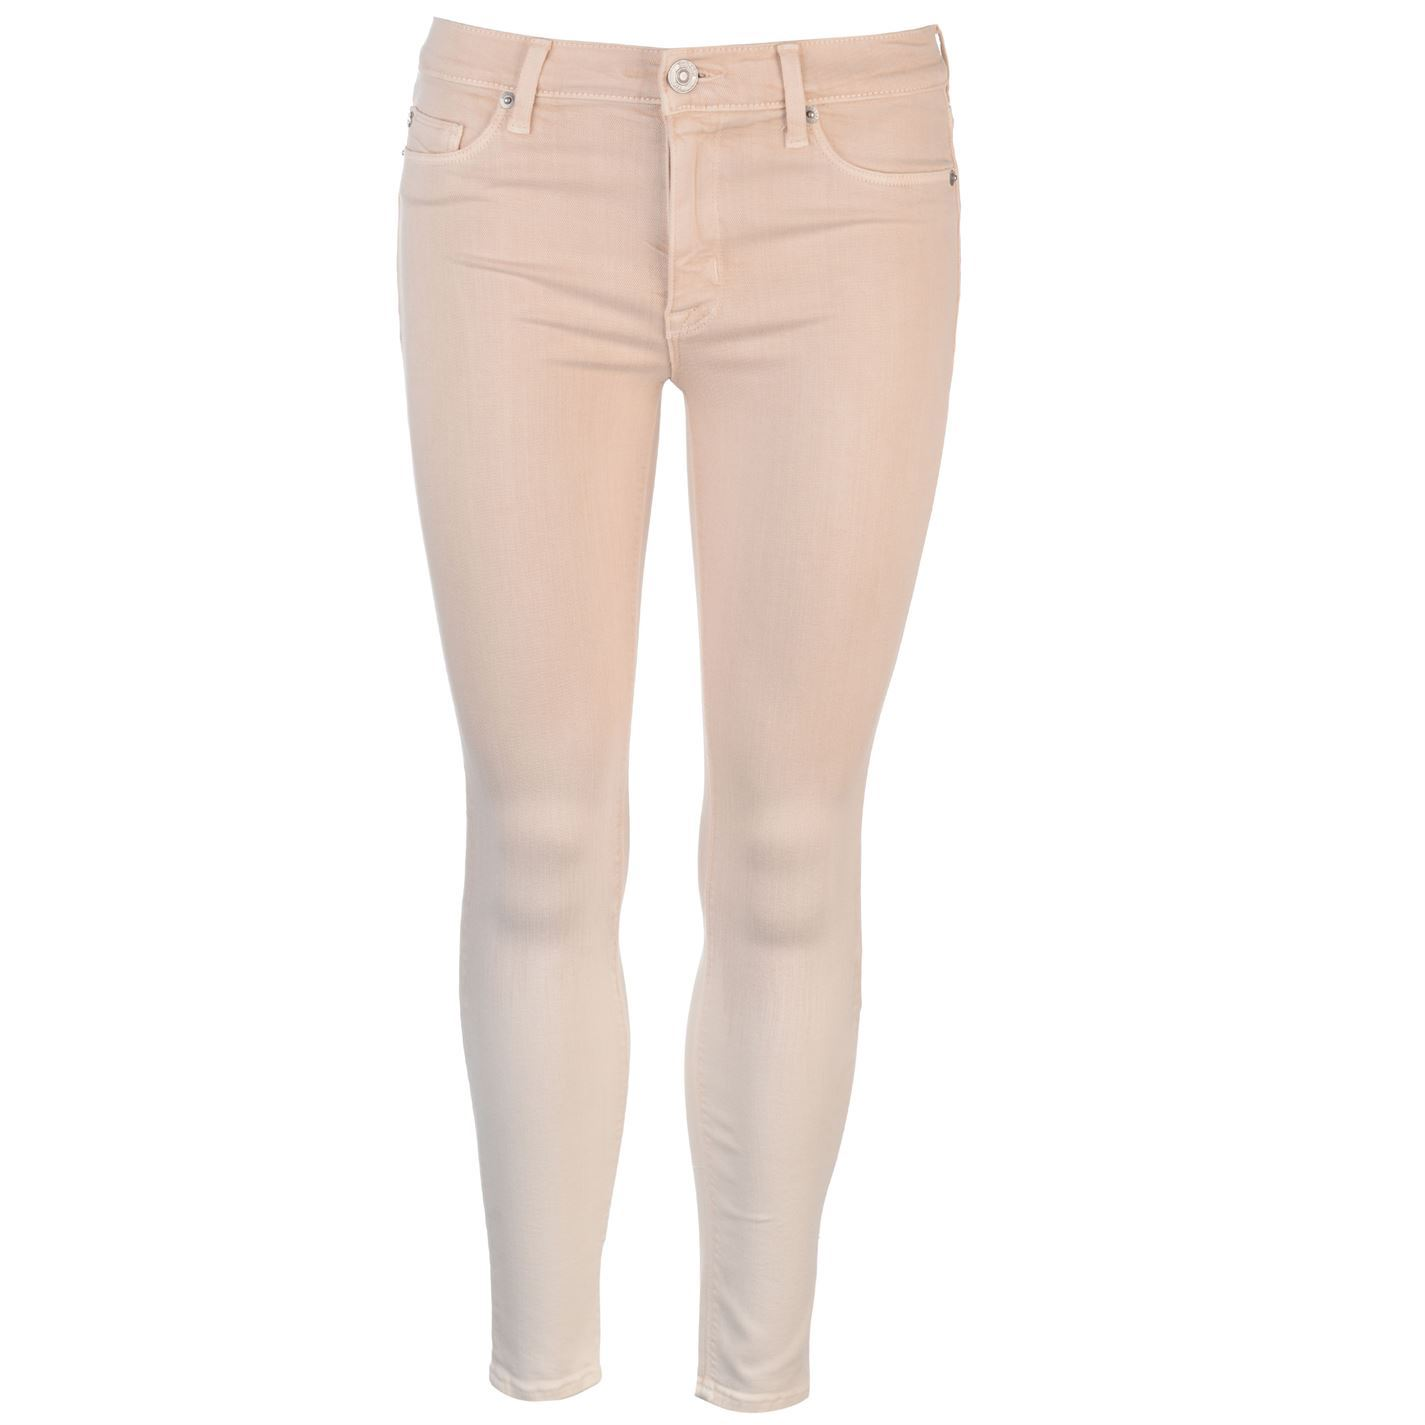 Hudson-Jeans-Womens-Nico-Ankle-Skinny-Pants-Trousers-Bottoms